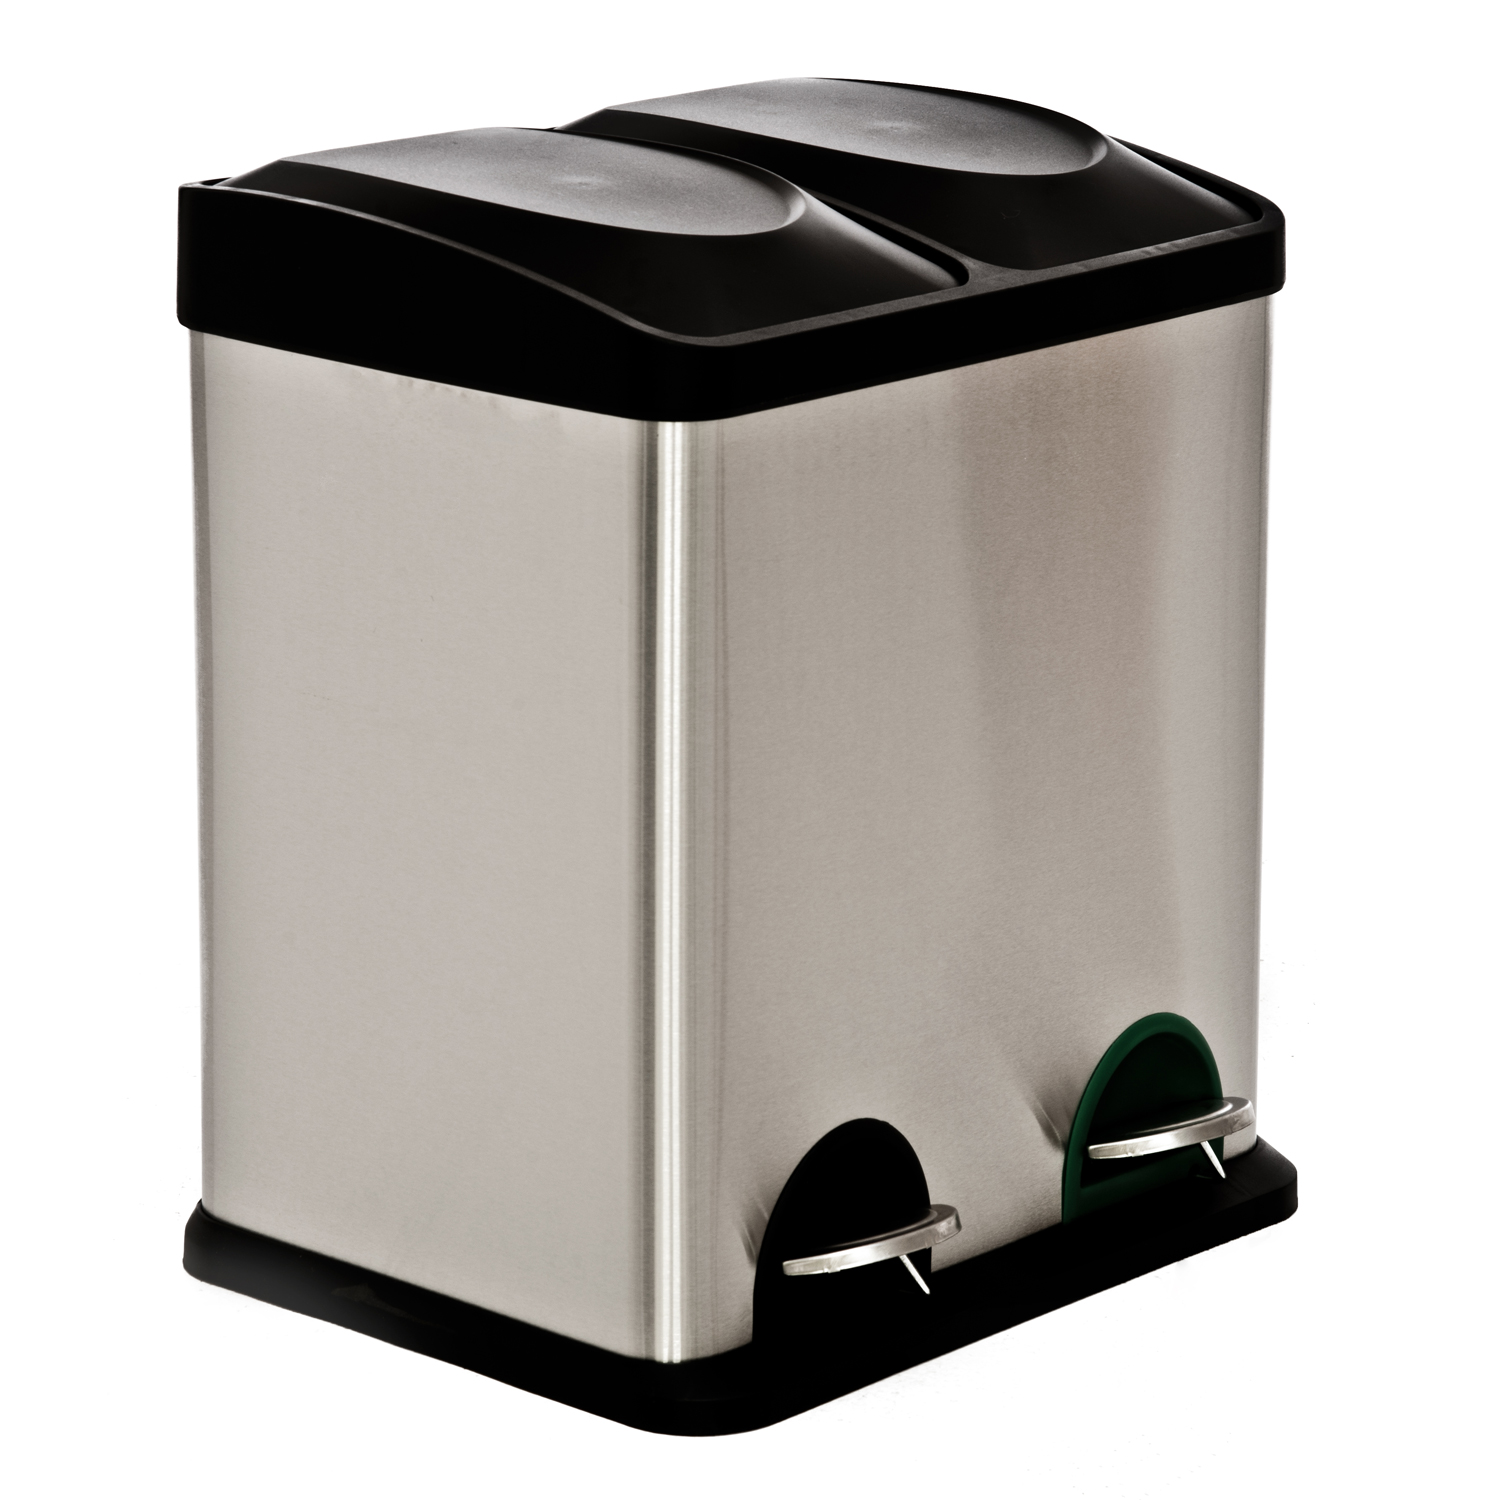 30l Recycle Bin, Stainless Steel